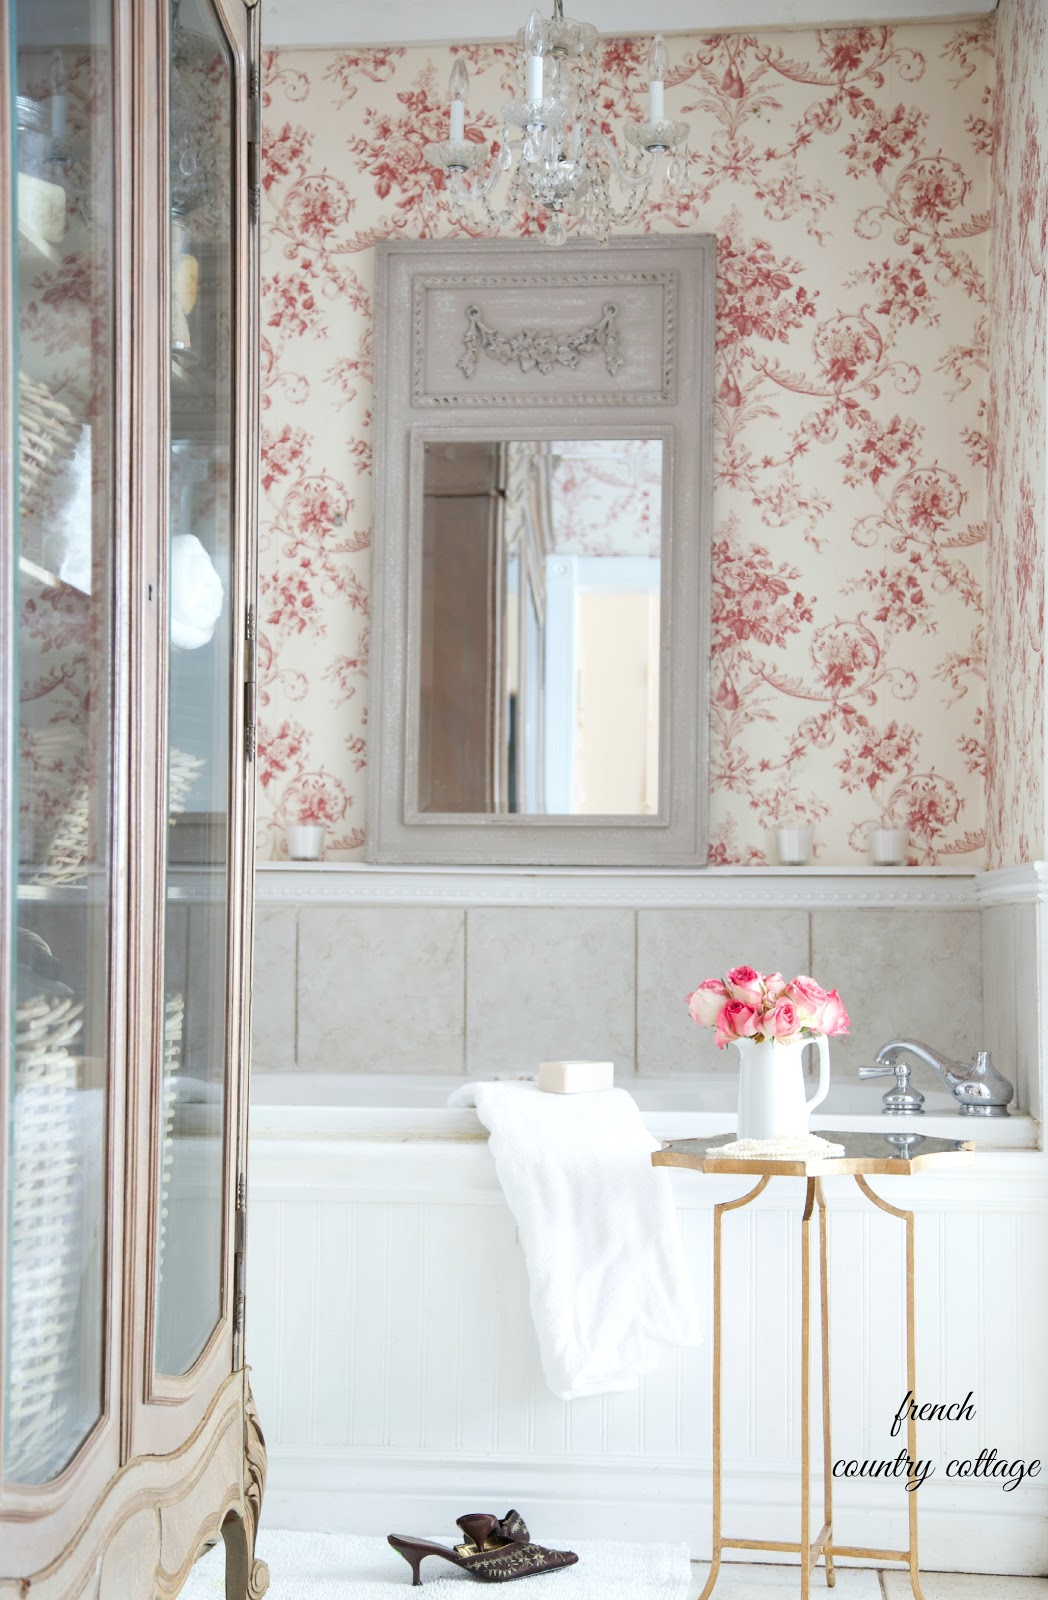 7 inspirations for marble and wallpaper bathroom designs ...